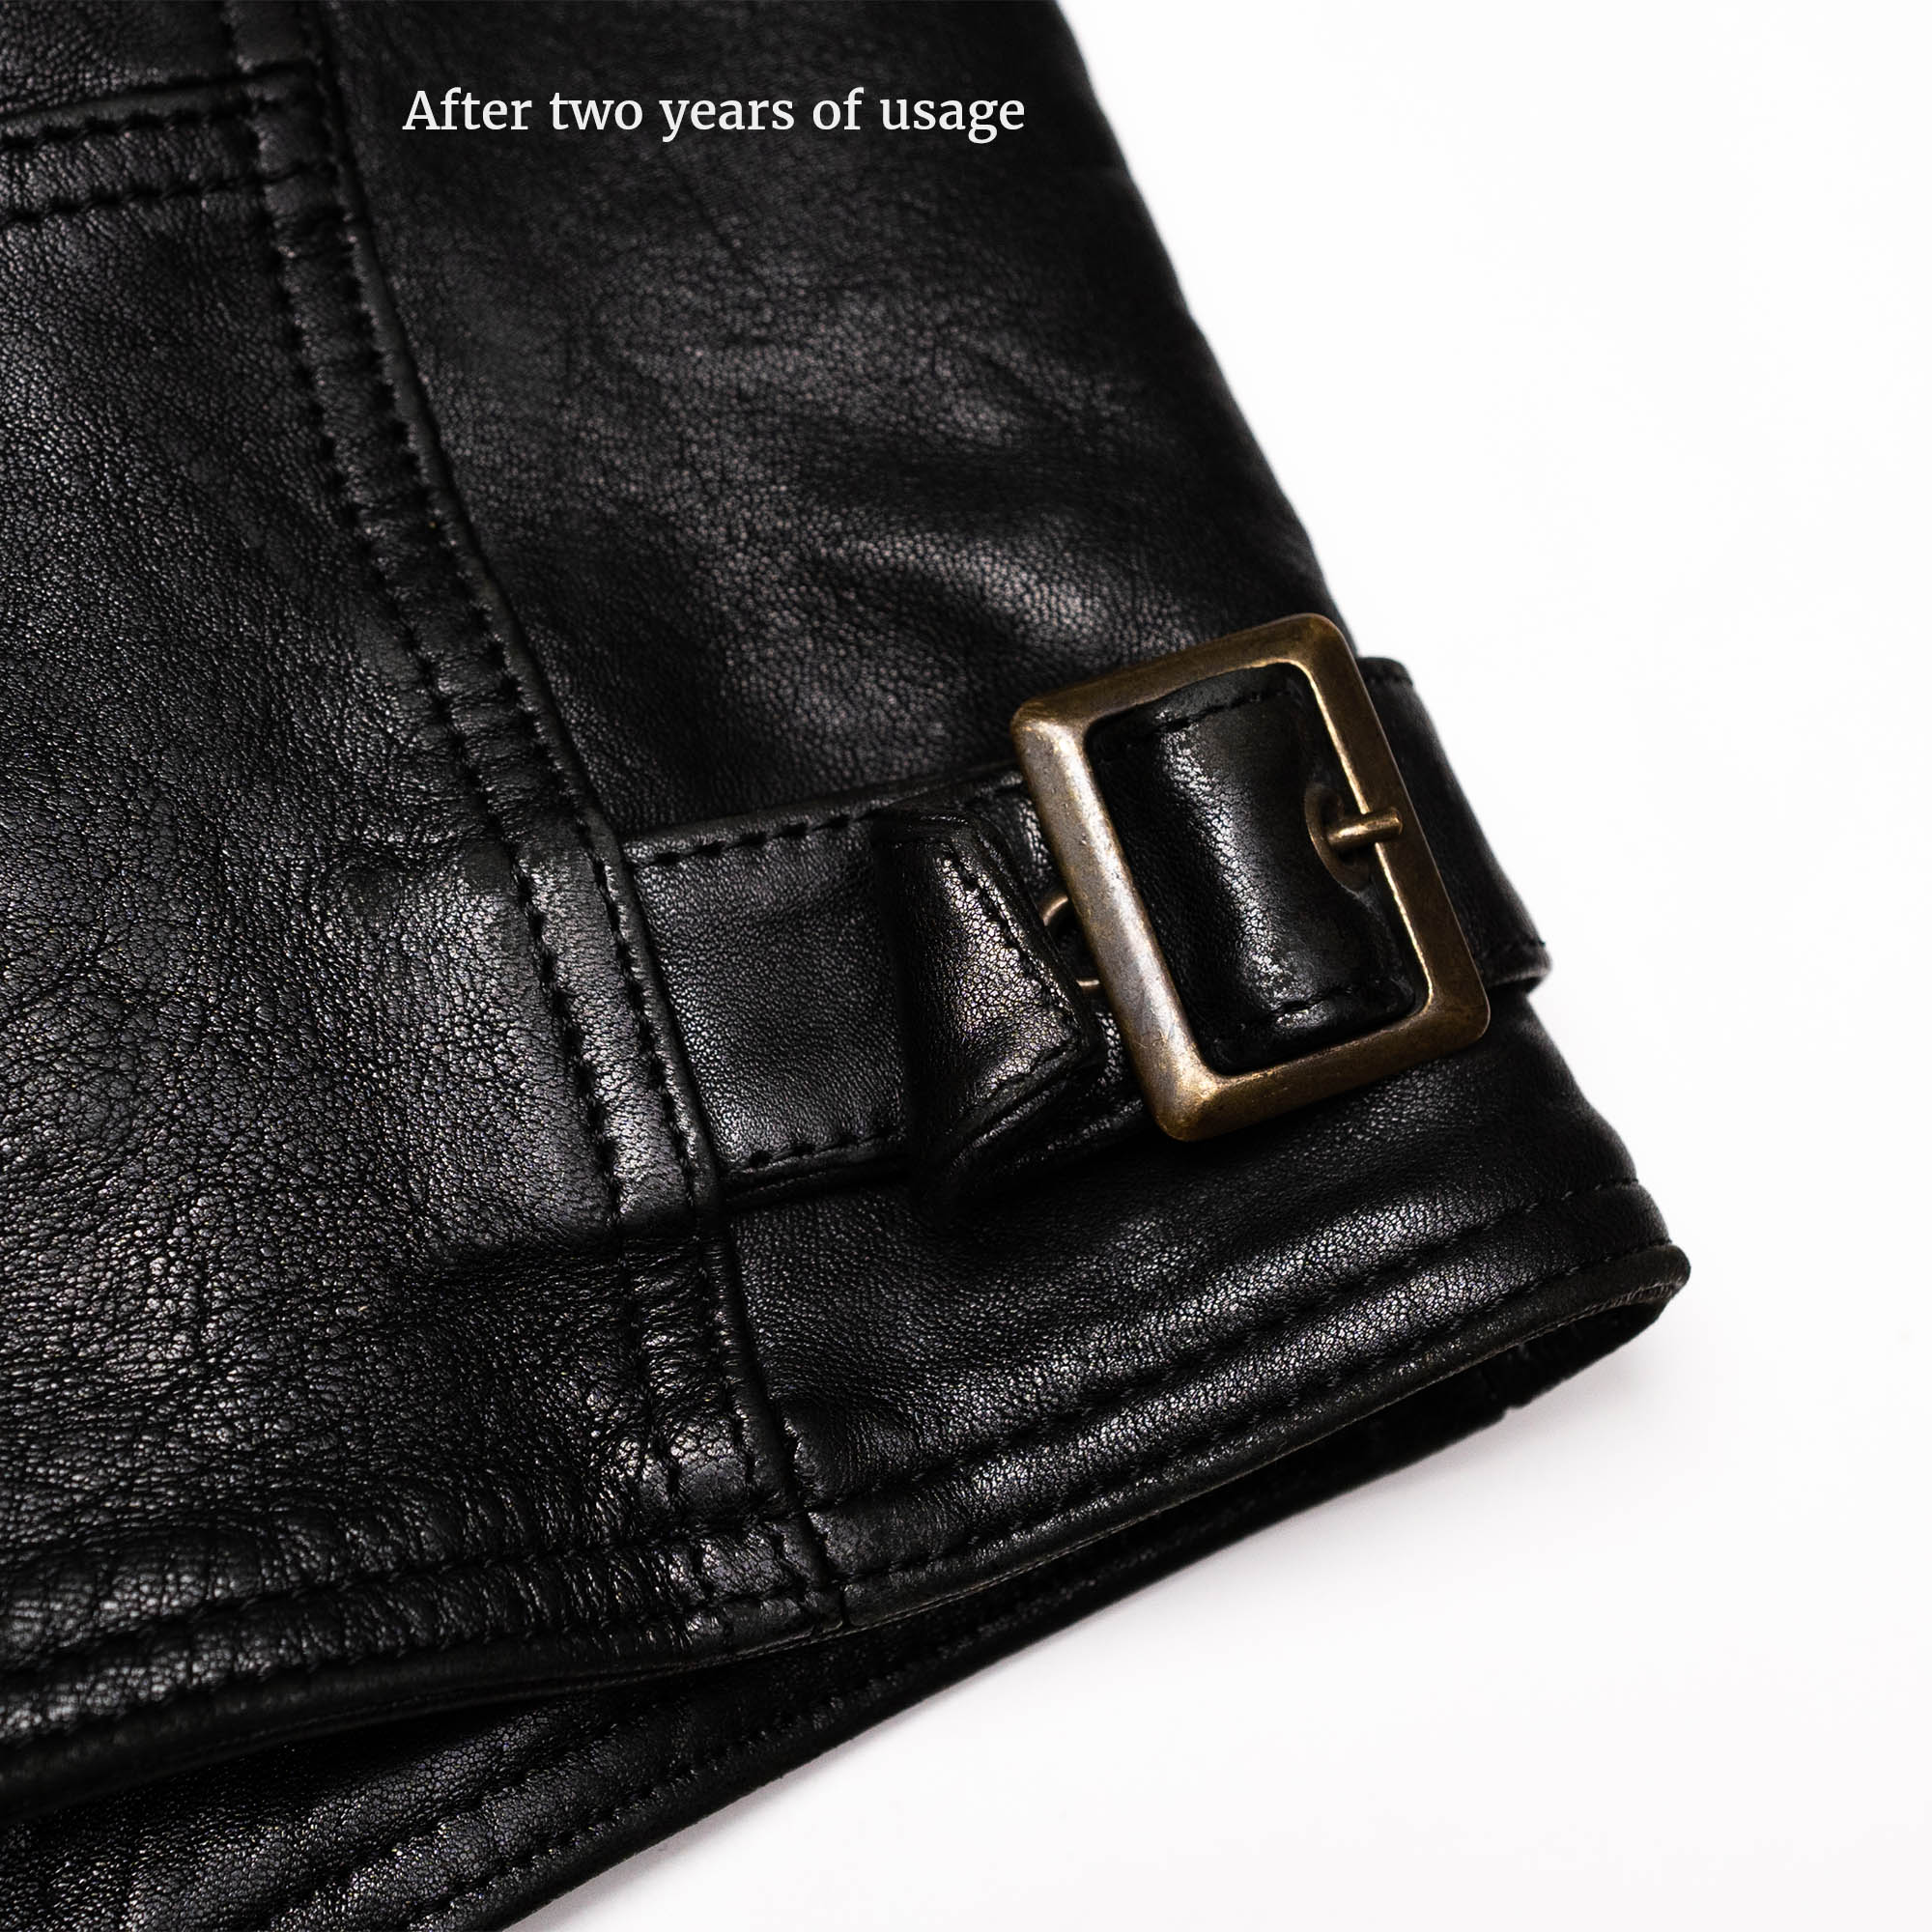 shangri-la-heritage-cafe-racer-black-lambskin-jacket-still-life-adjustable-tab-used